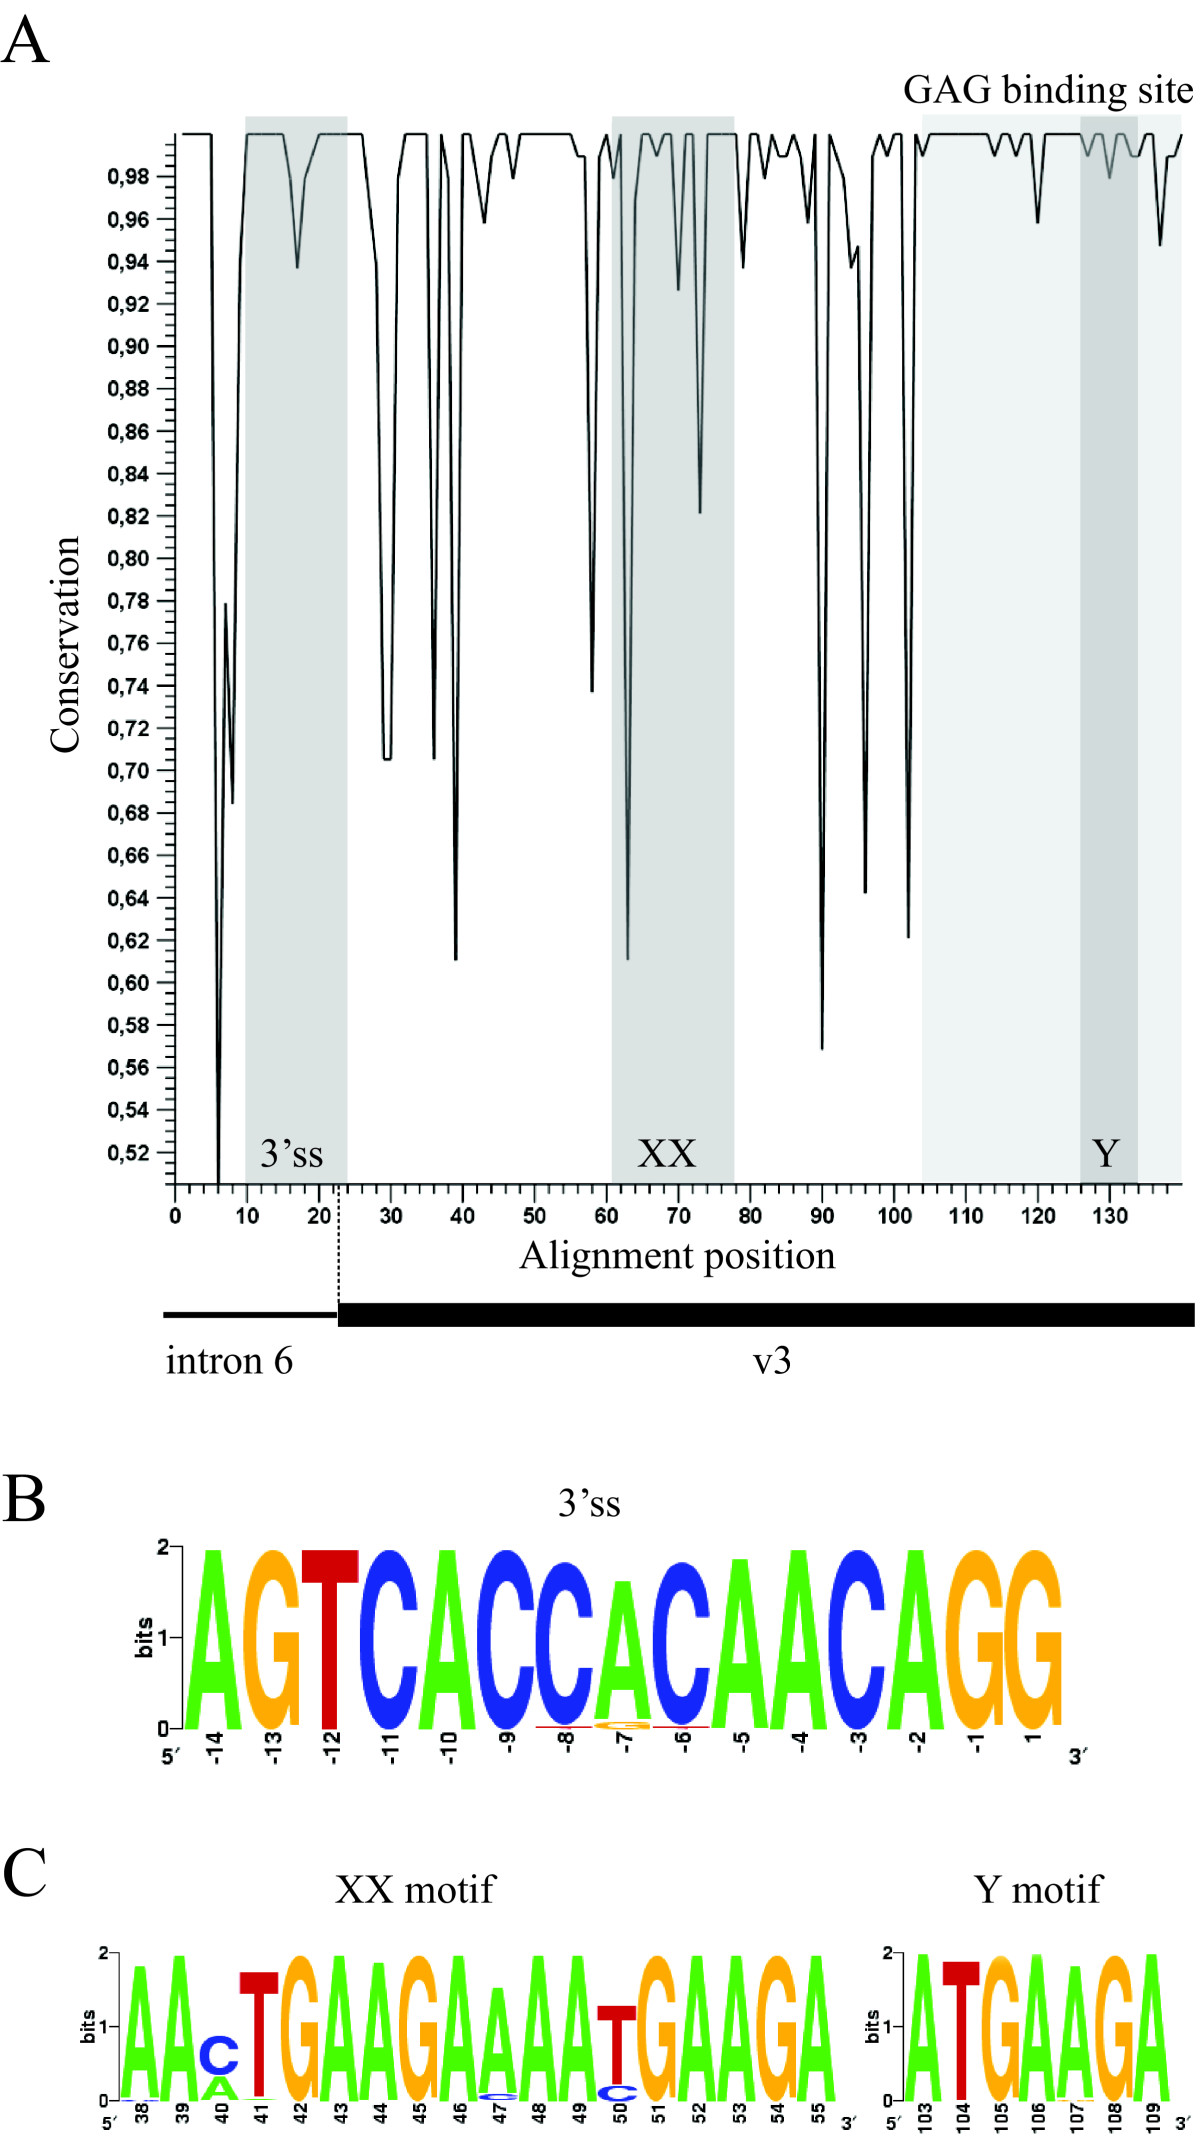 https://static-content.springer.com/image/art%3A10.1186%2F1756-0500-1-57/MediaObjects/13104_2008_Article_57_Fig2_HTML.jpg